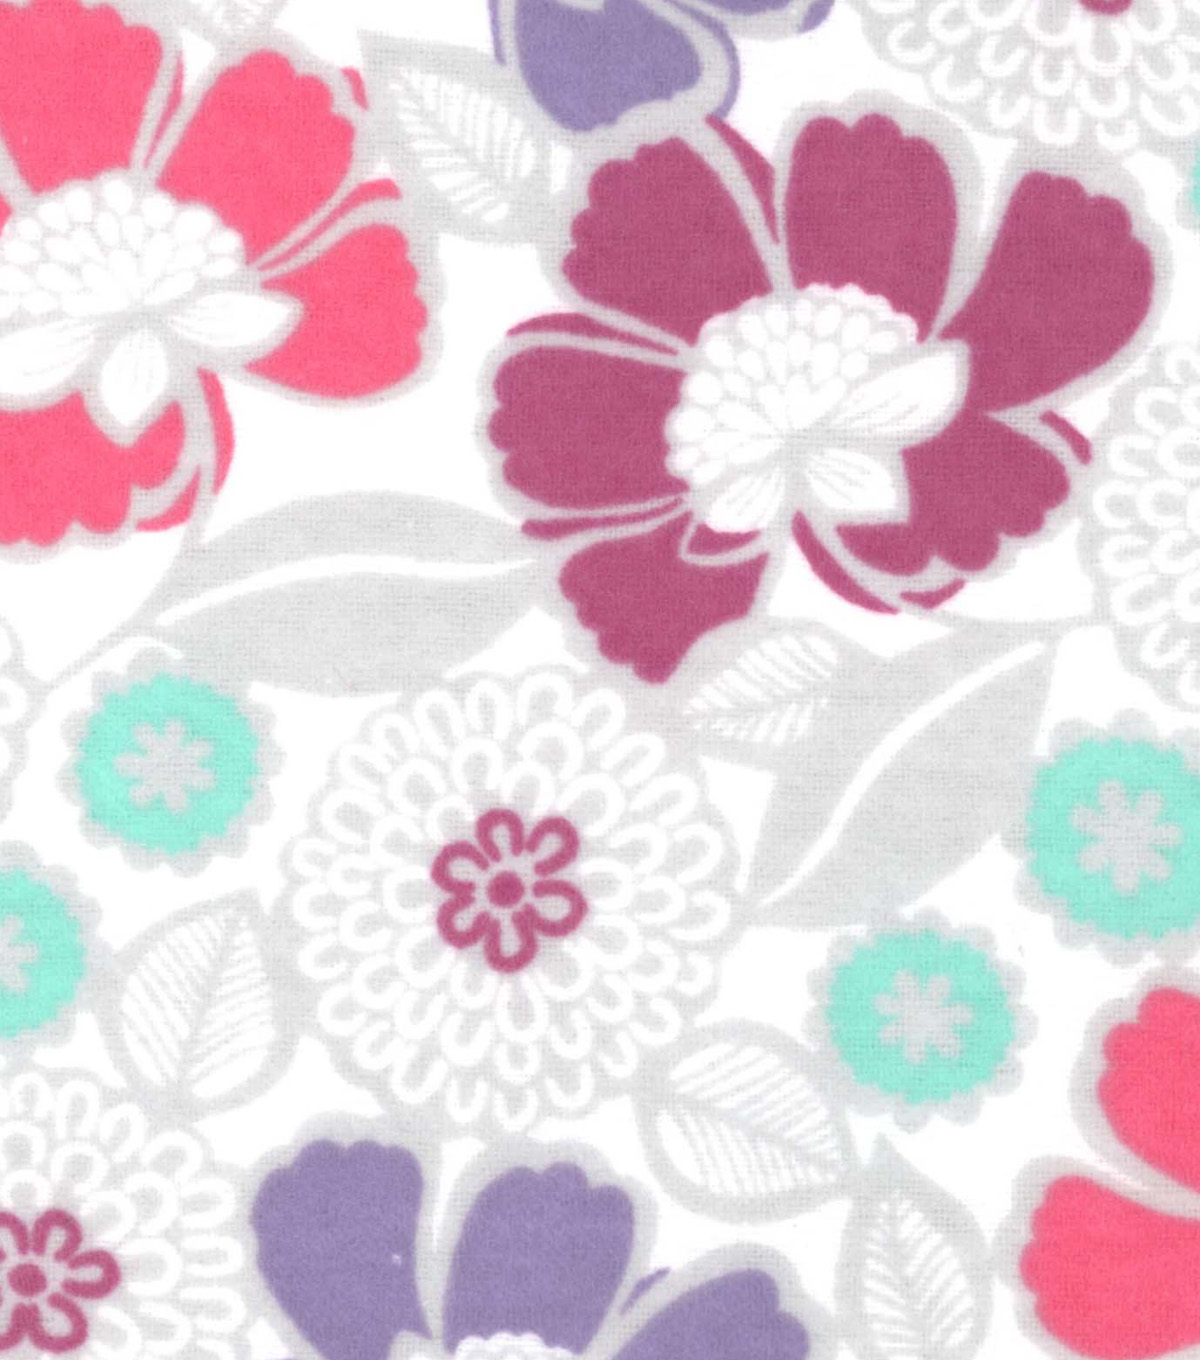 Snuggle Flannel Fabric -Gypsy Floral White